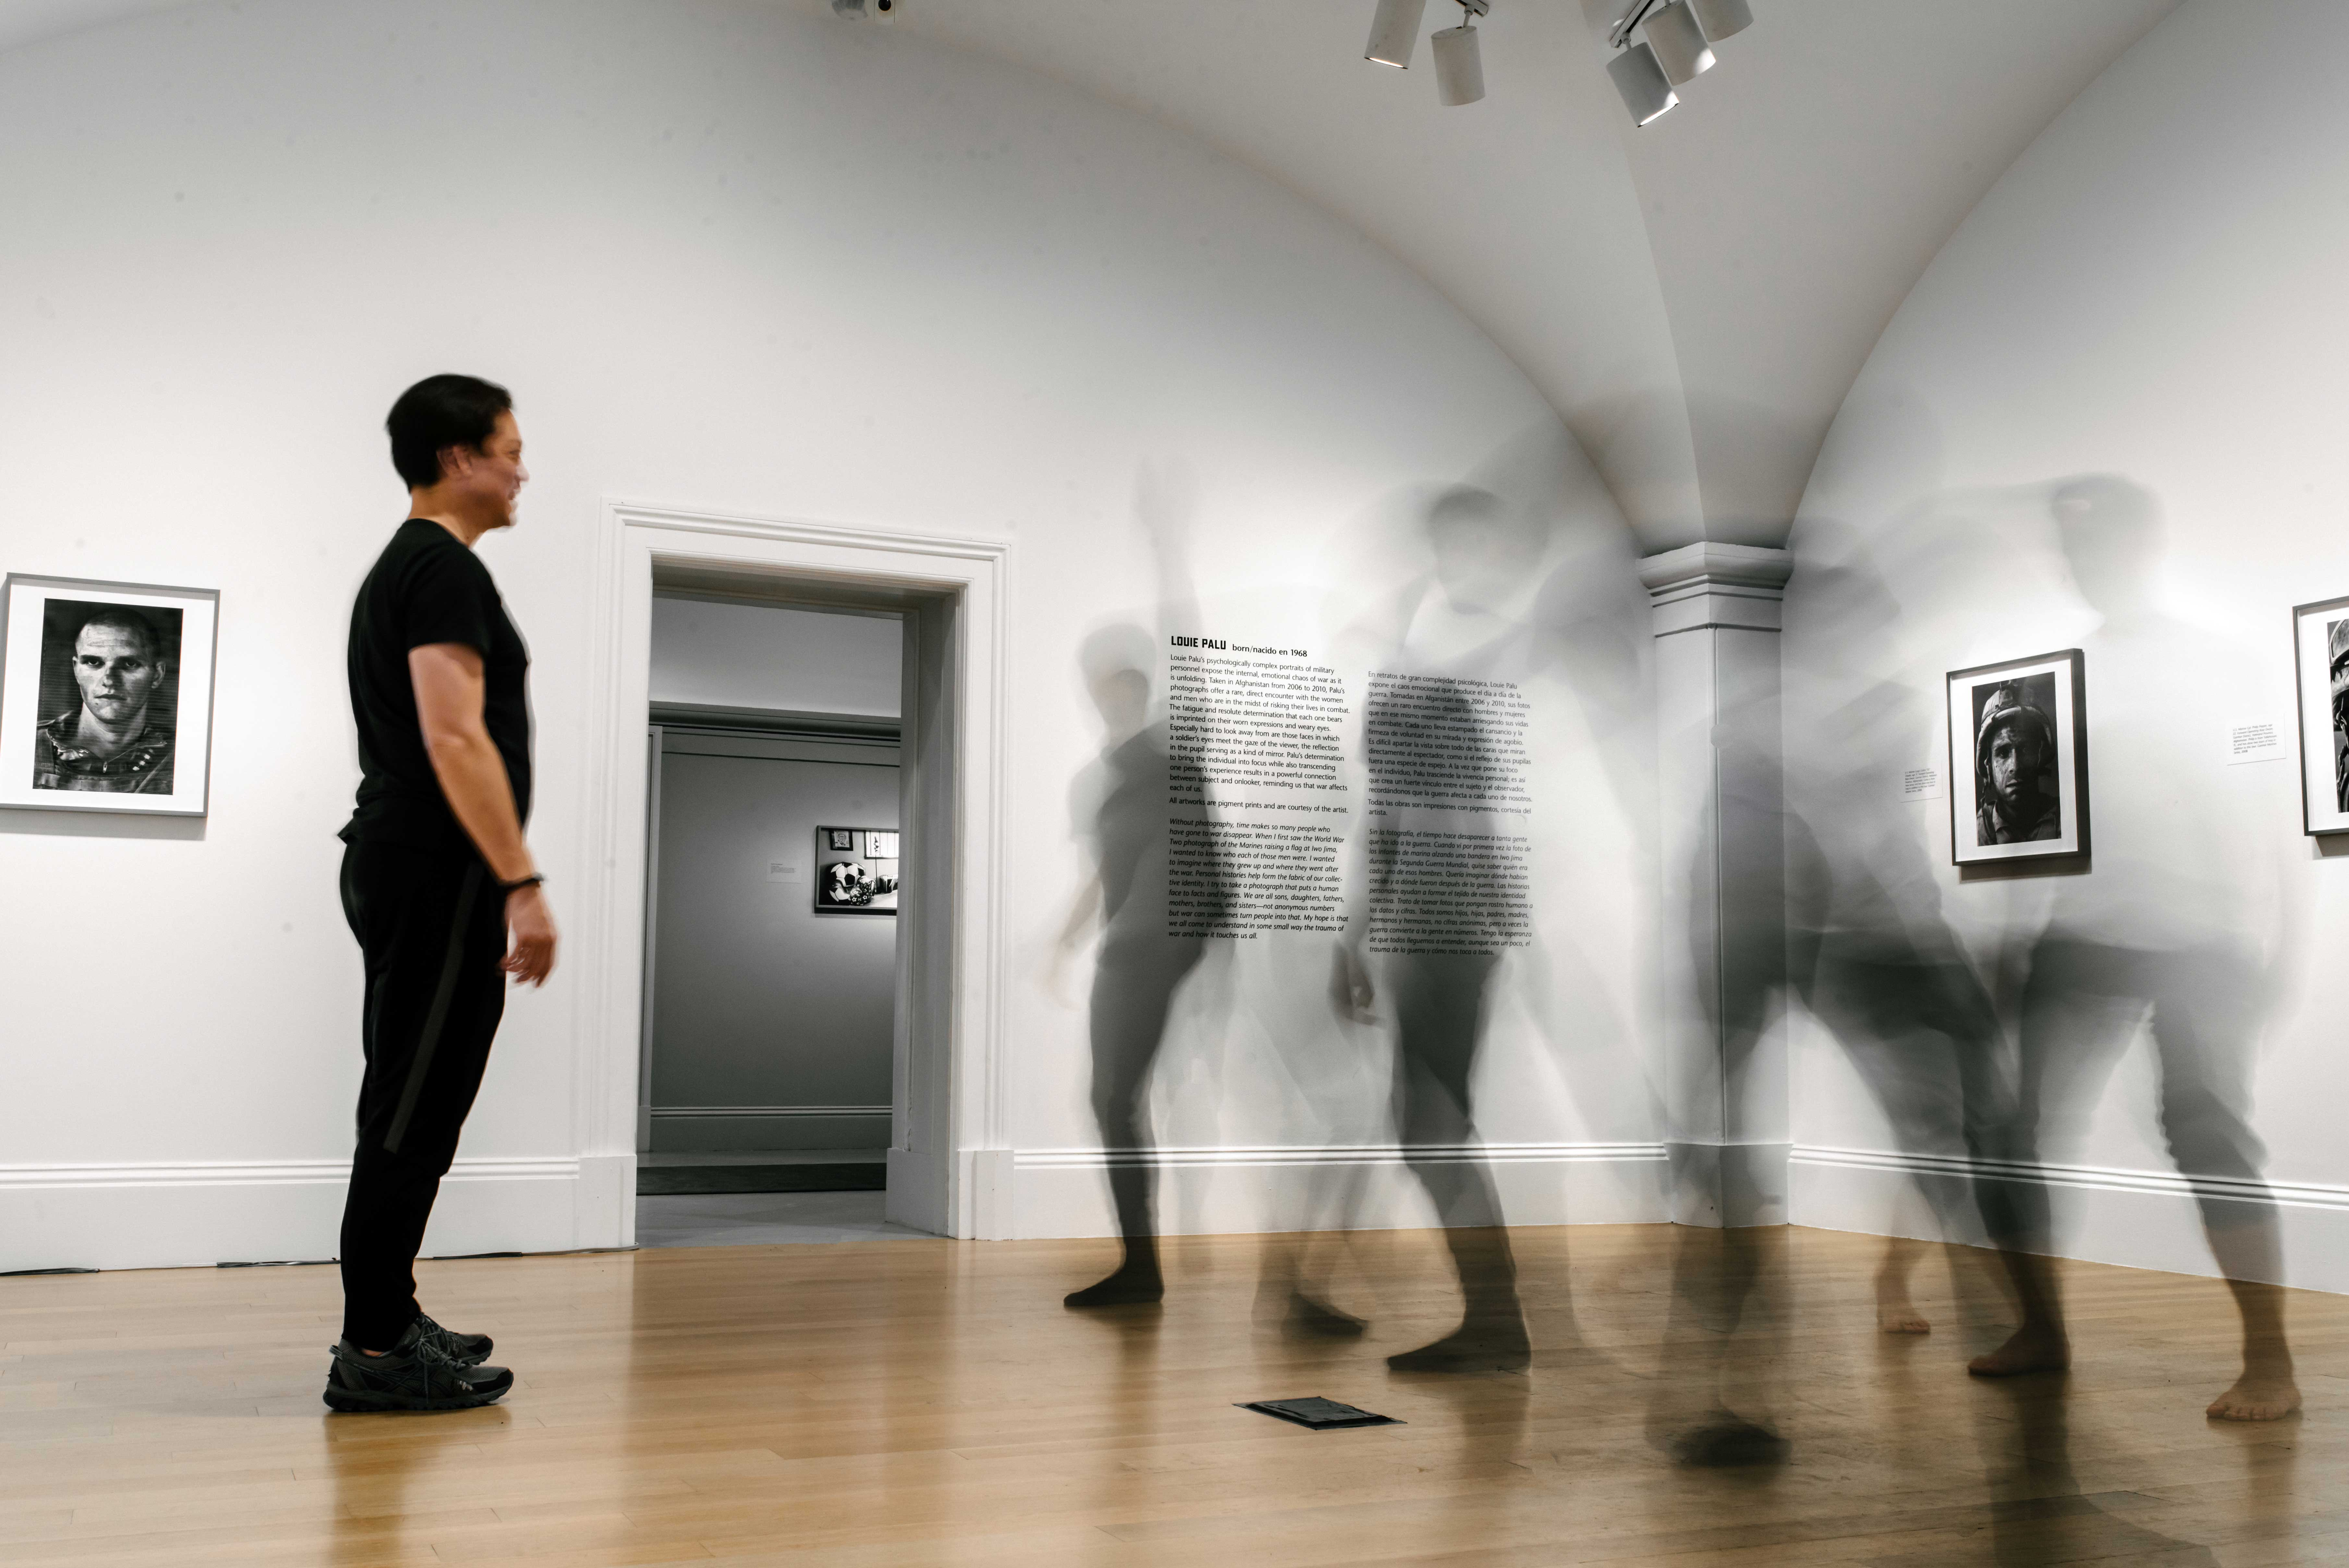 Image of a man standing in a gallery looking at three moving shapes